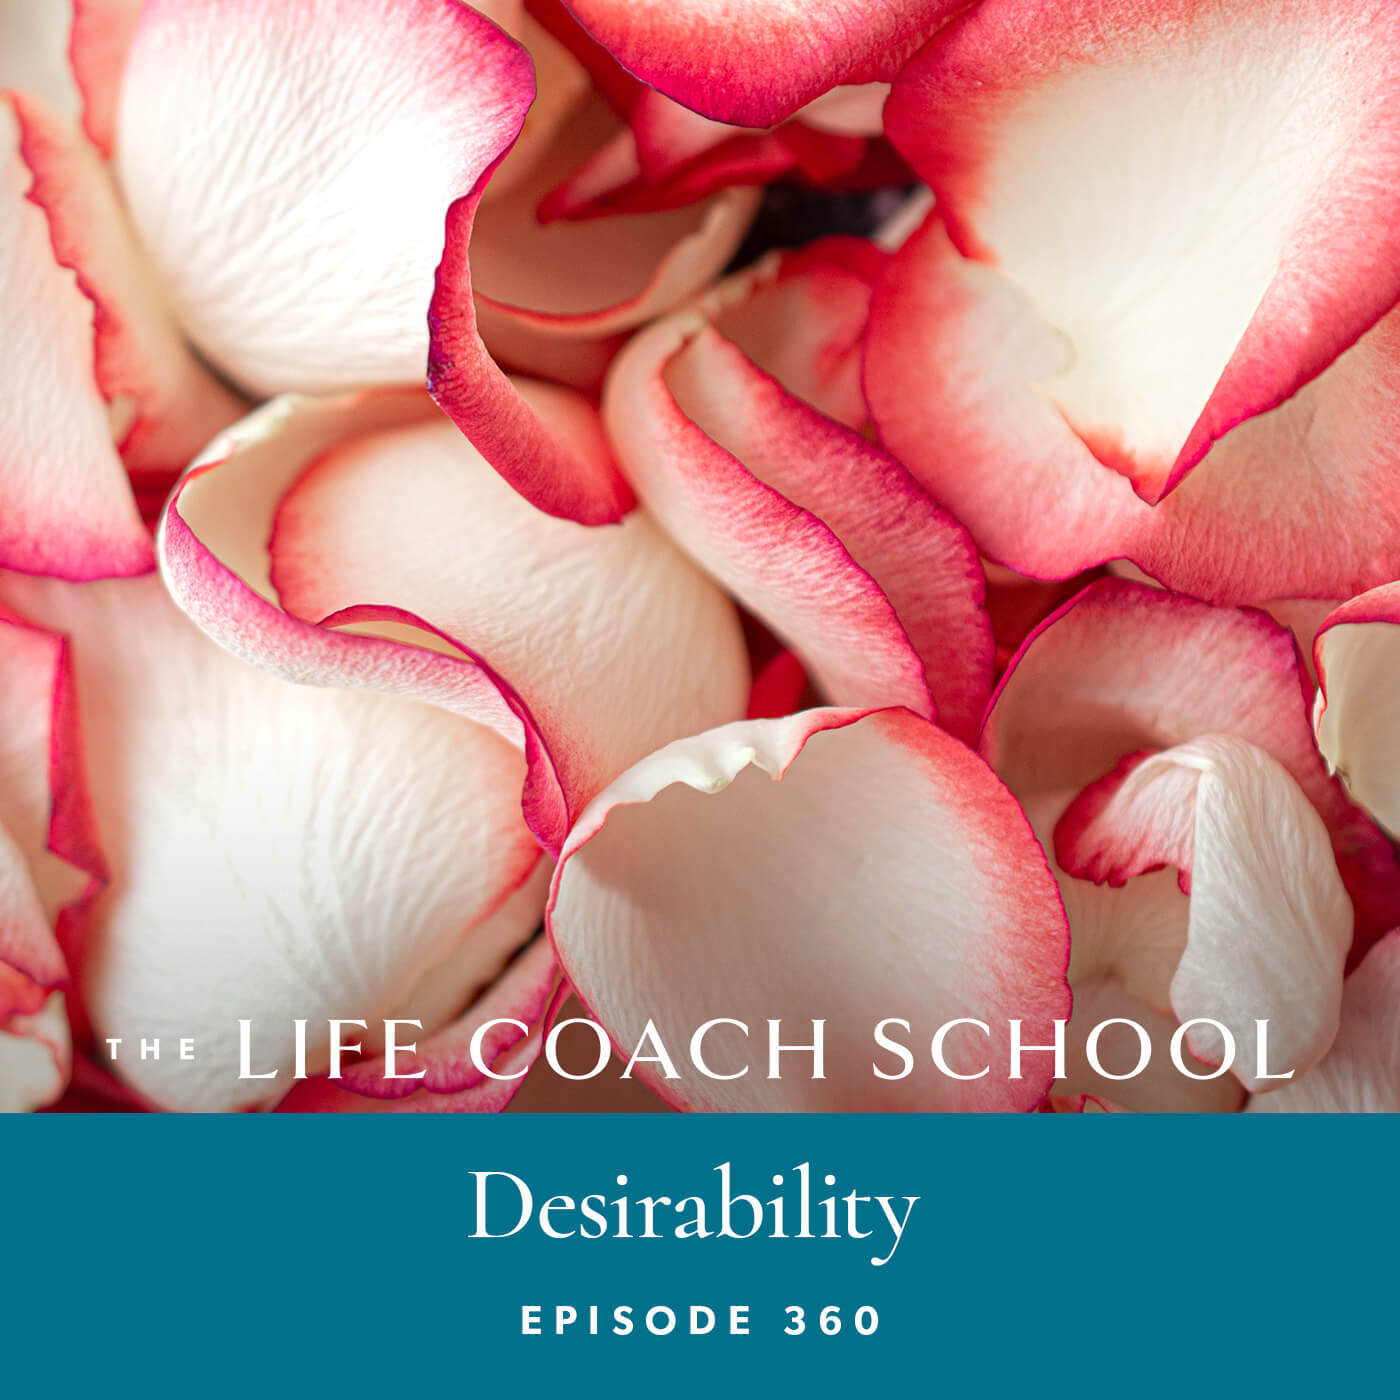 The Life Coach School Podcast with Brooke Castillo | Desirability